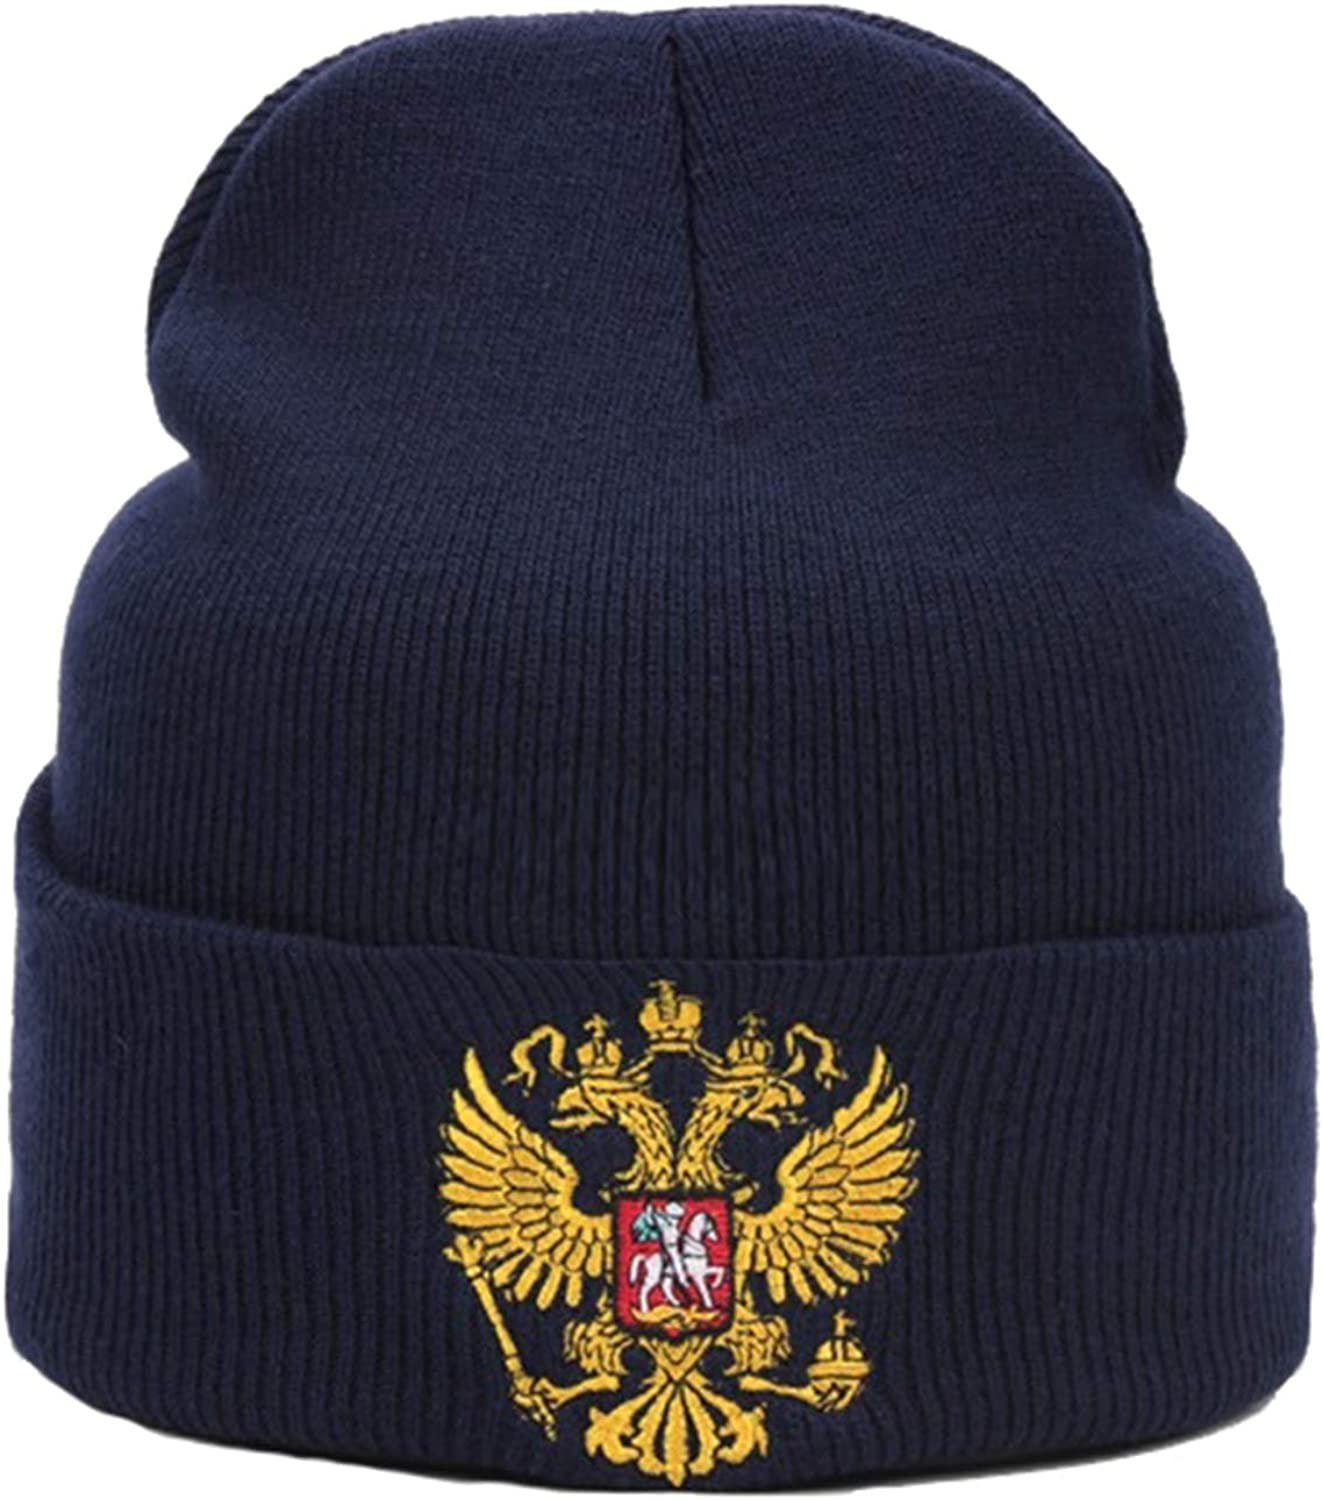 Russia Men Women Warm Knitted Hat Fashion Very Cold Casual Beanies for Unisex Winter Caps